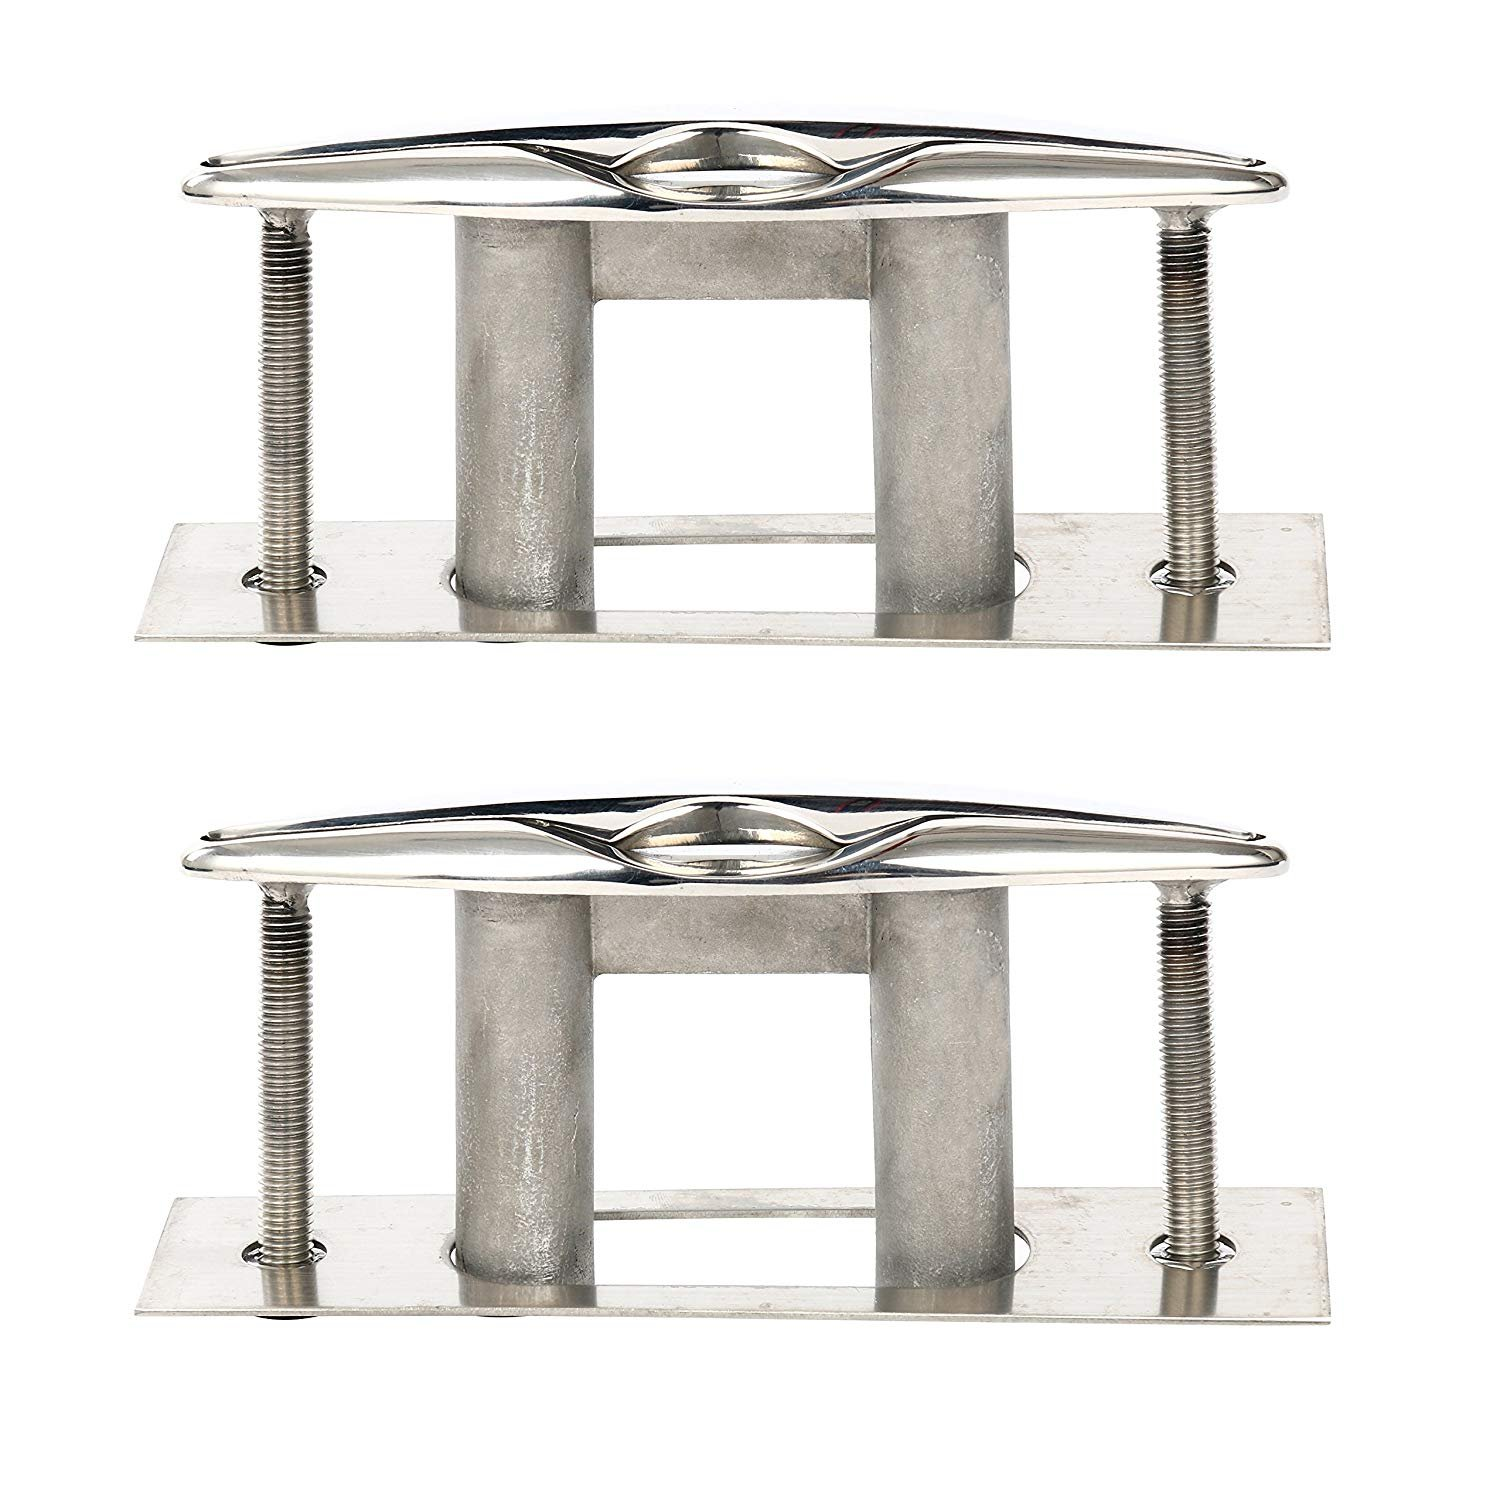 Amarine-made Pair Of Boat Marine Stainless Steel 316 Pull up Cleat Flush Mount Cleat Lift - 6 Inch